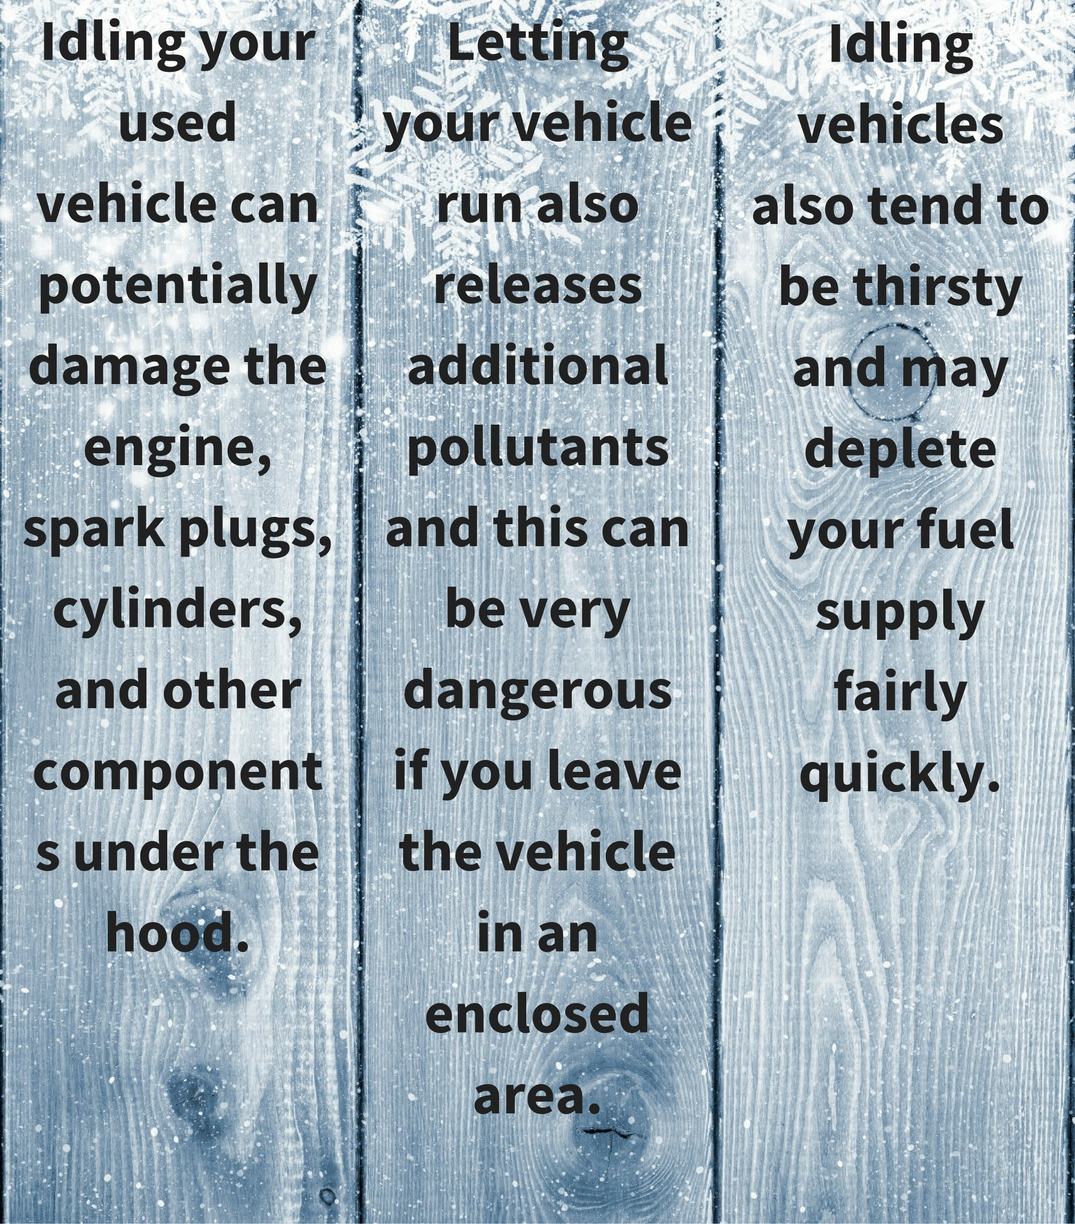 Infographic about warming used vehicles in the cold